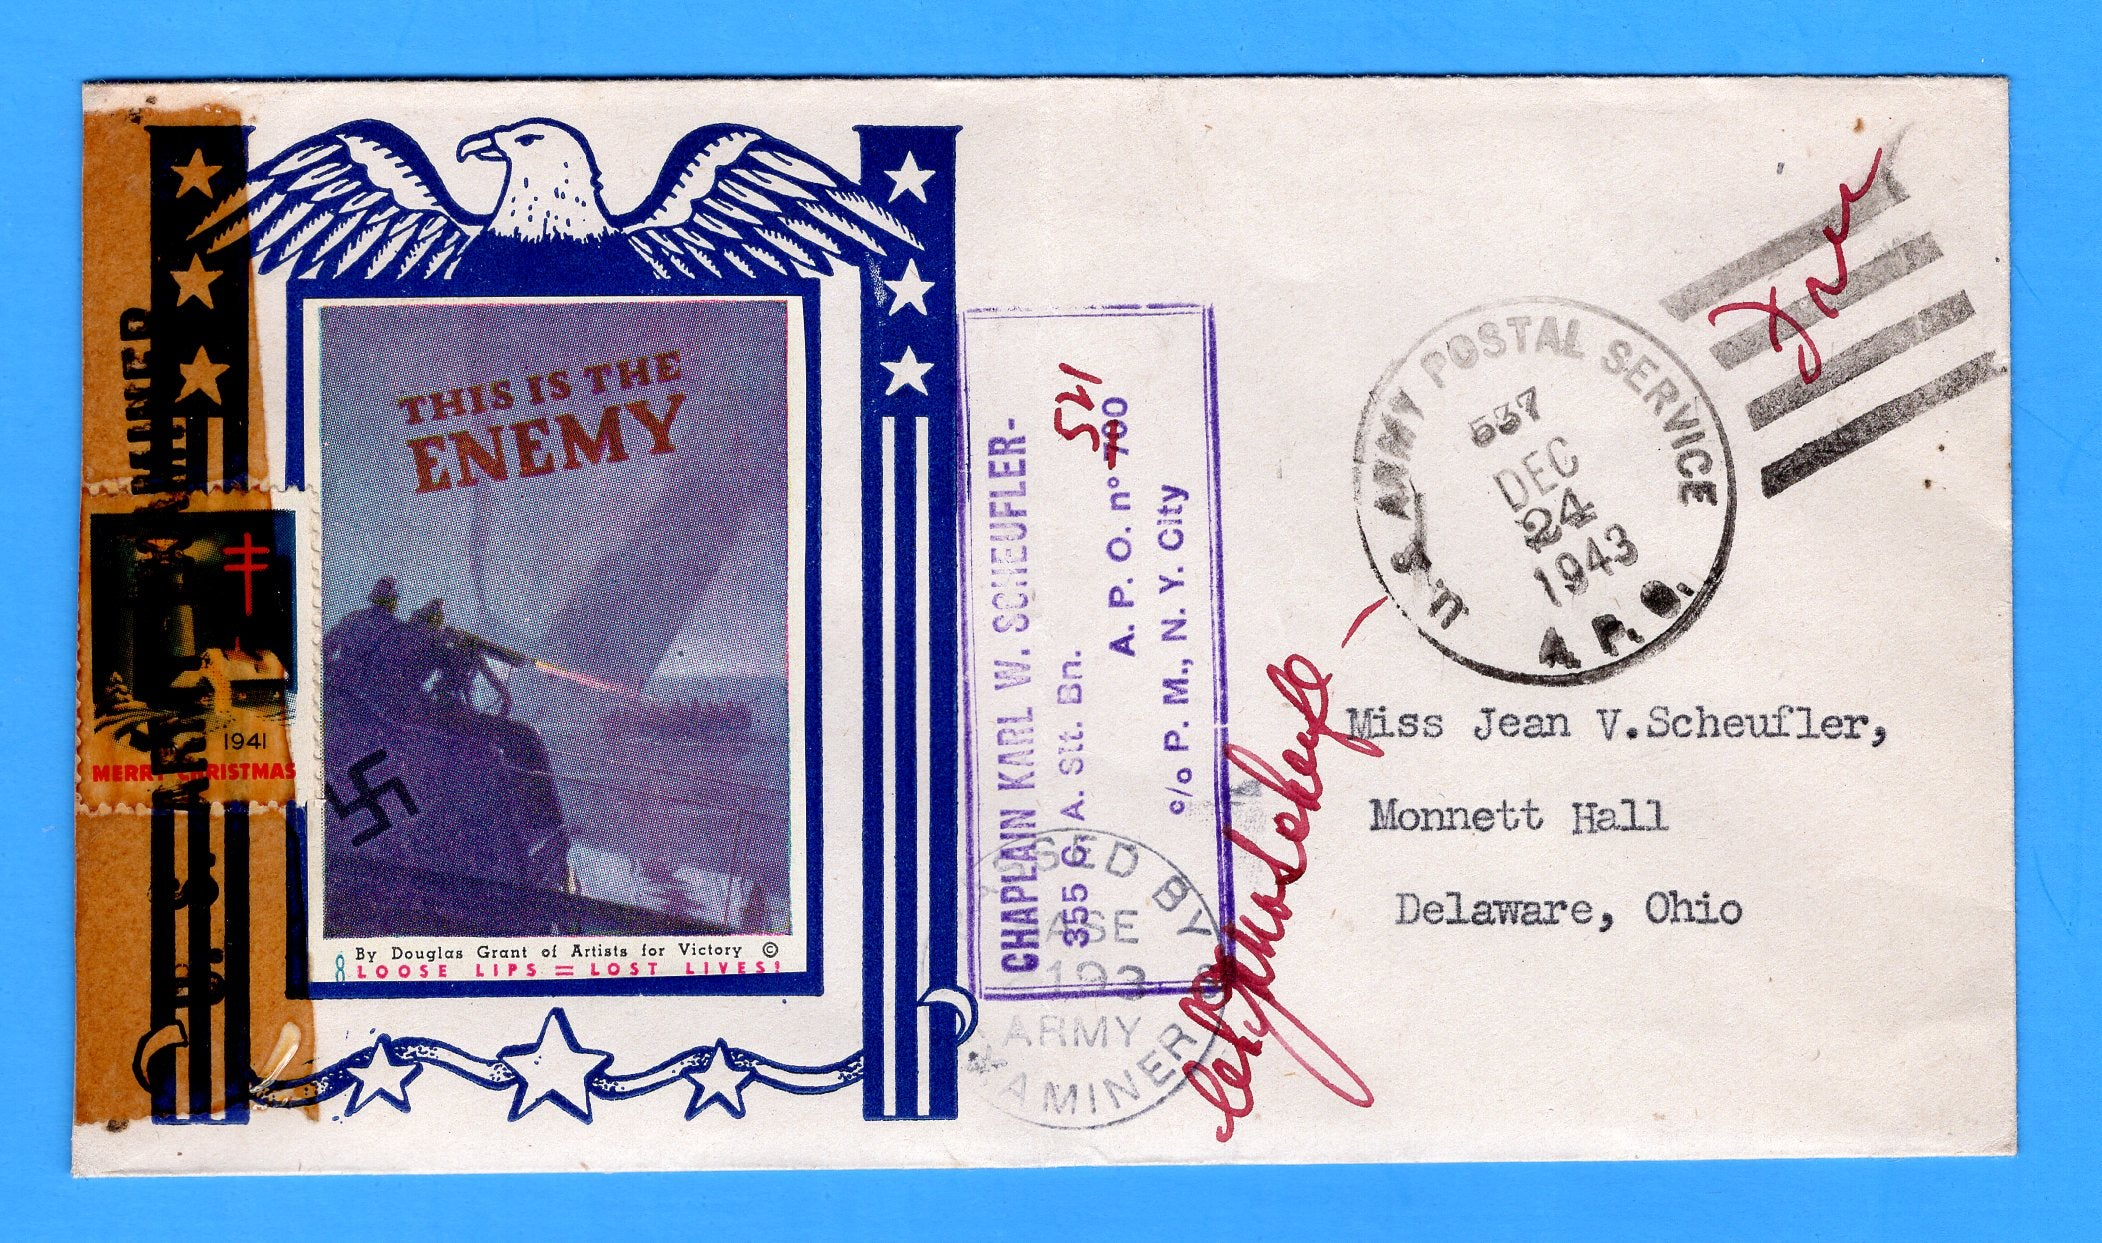 "Army Chaplain's Free Mail APO 521 Naples, Italy, Cancelled APO 537 Bizerte, Tunisia ""This is the Enemy"" December 24, 1943 - Patriotic Cover by Artists for Victory"